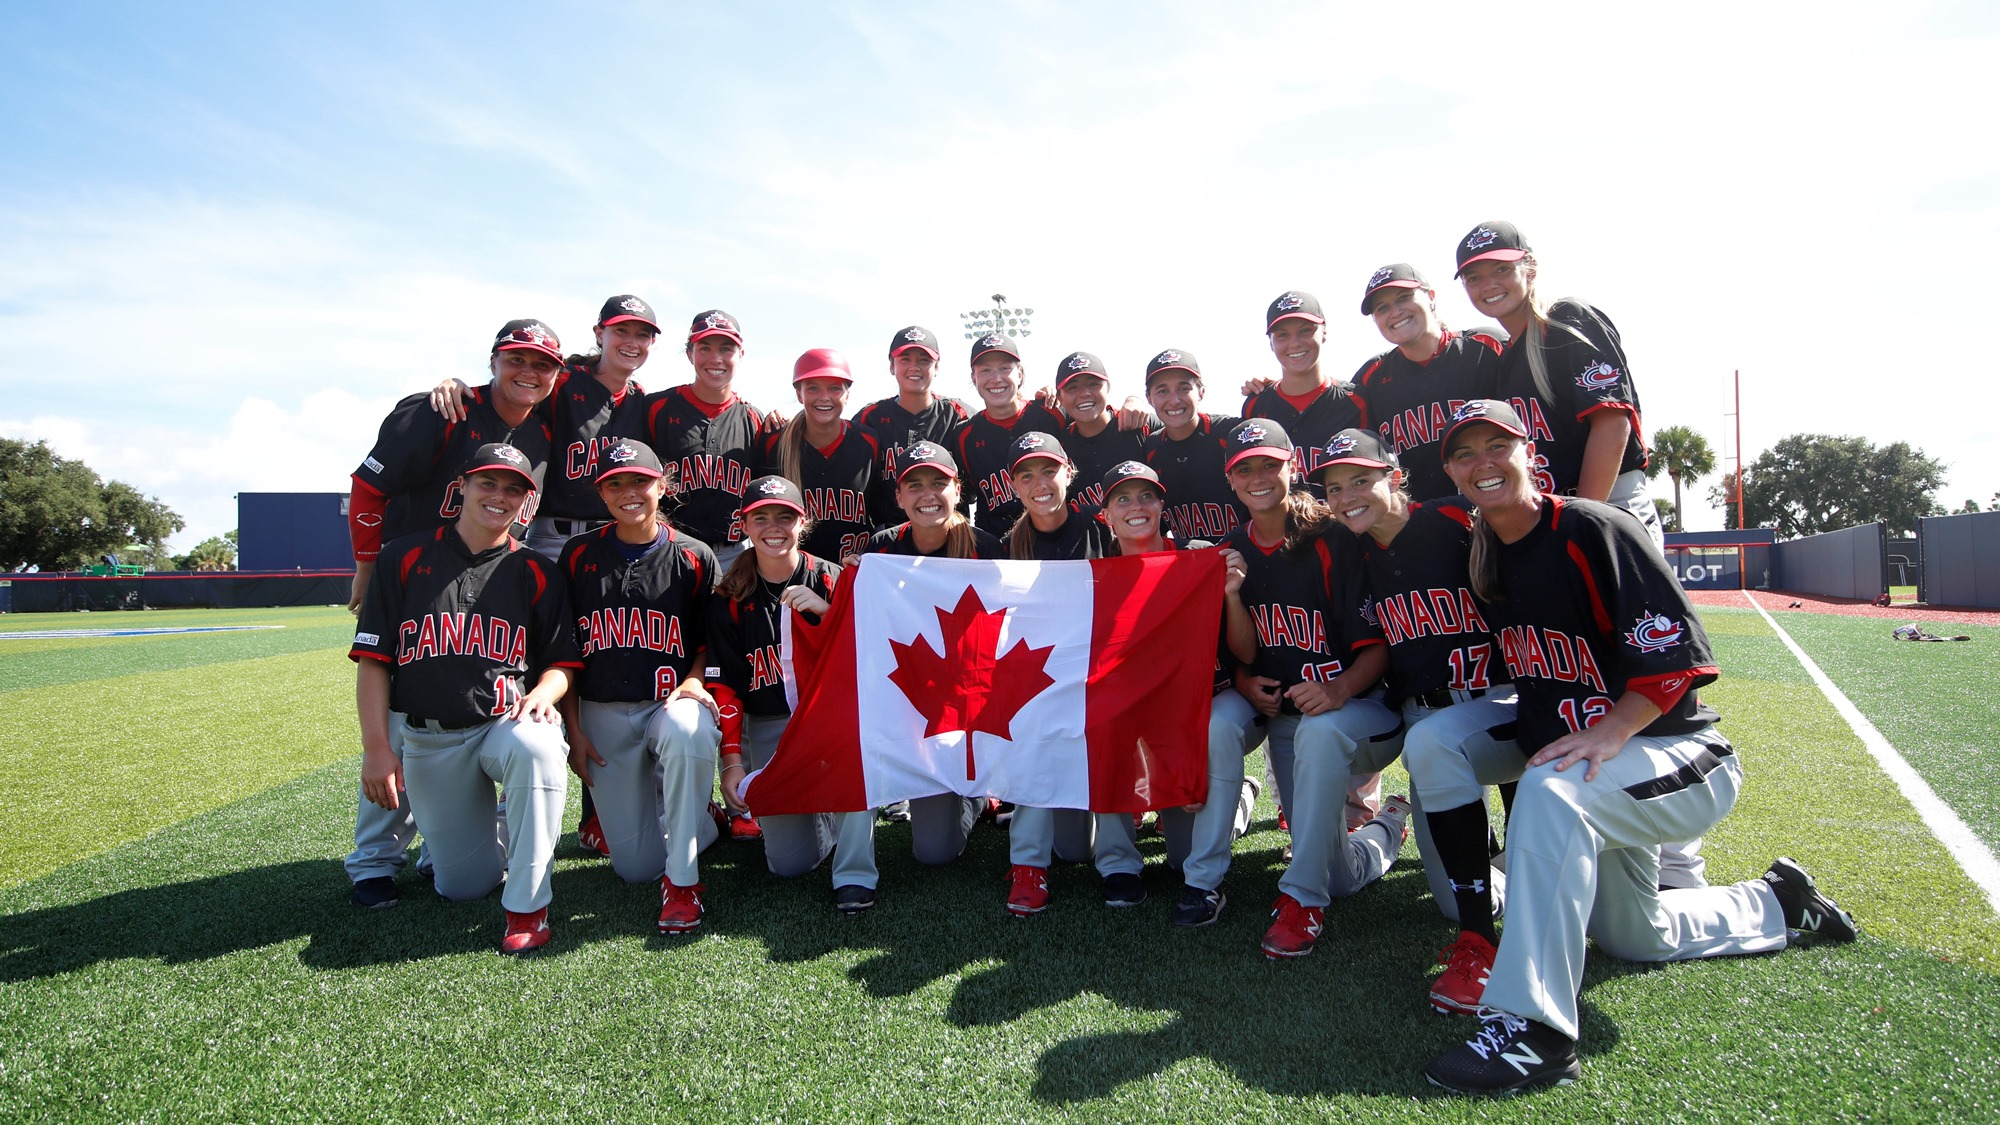 Canada posing with the National Flag